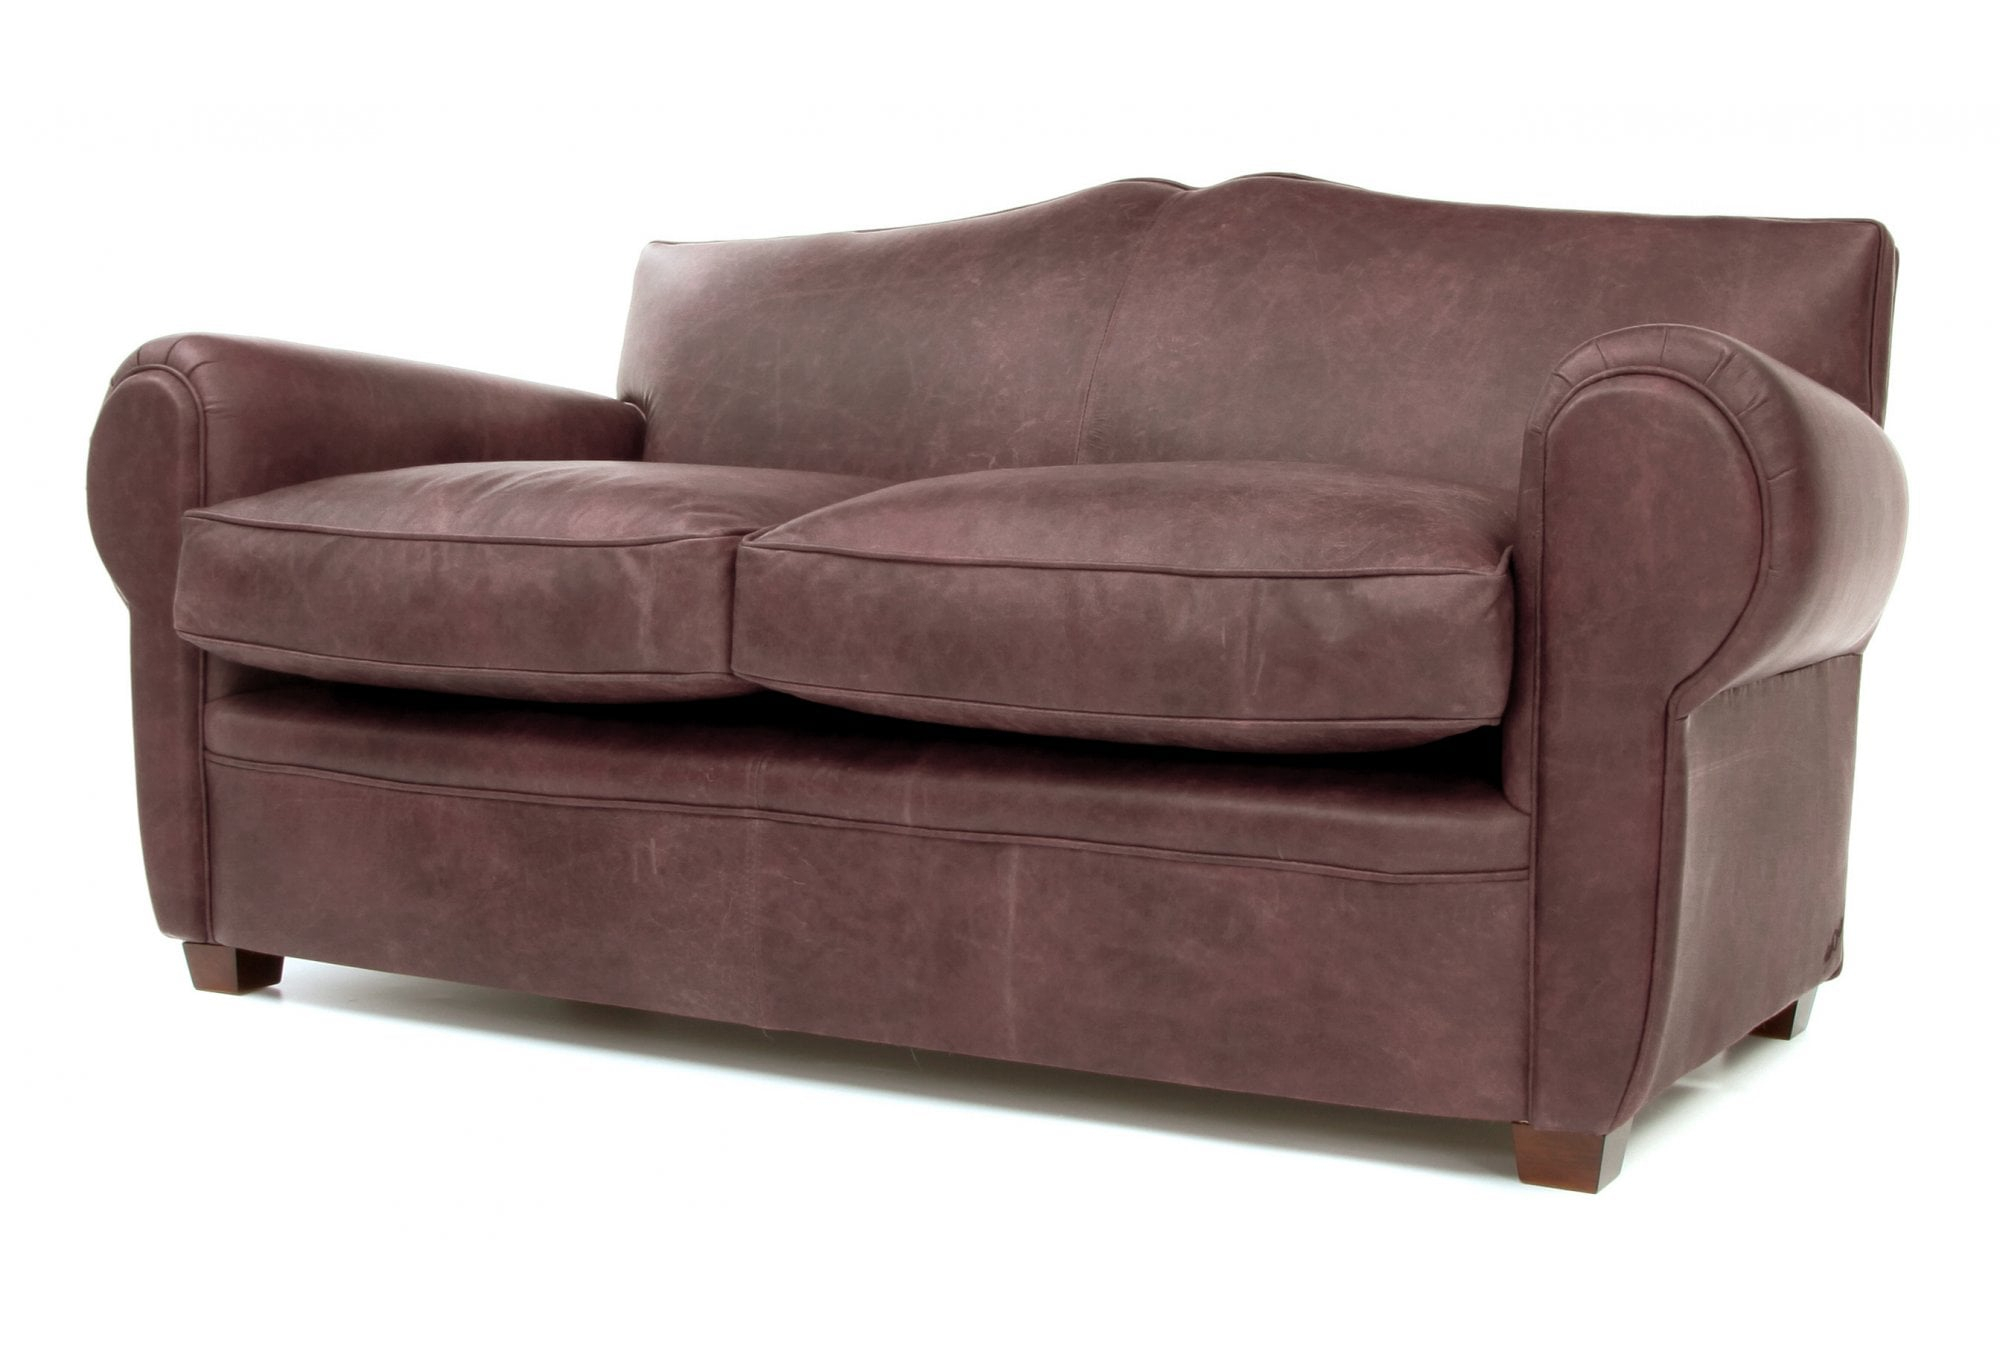 Old Lace   Vintage Leather Small 2 Seater Sofa From Old Throughout 2 Seater Sofas (View 9 of 15)